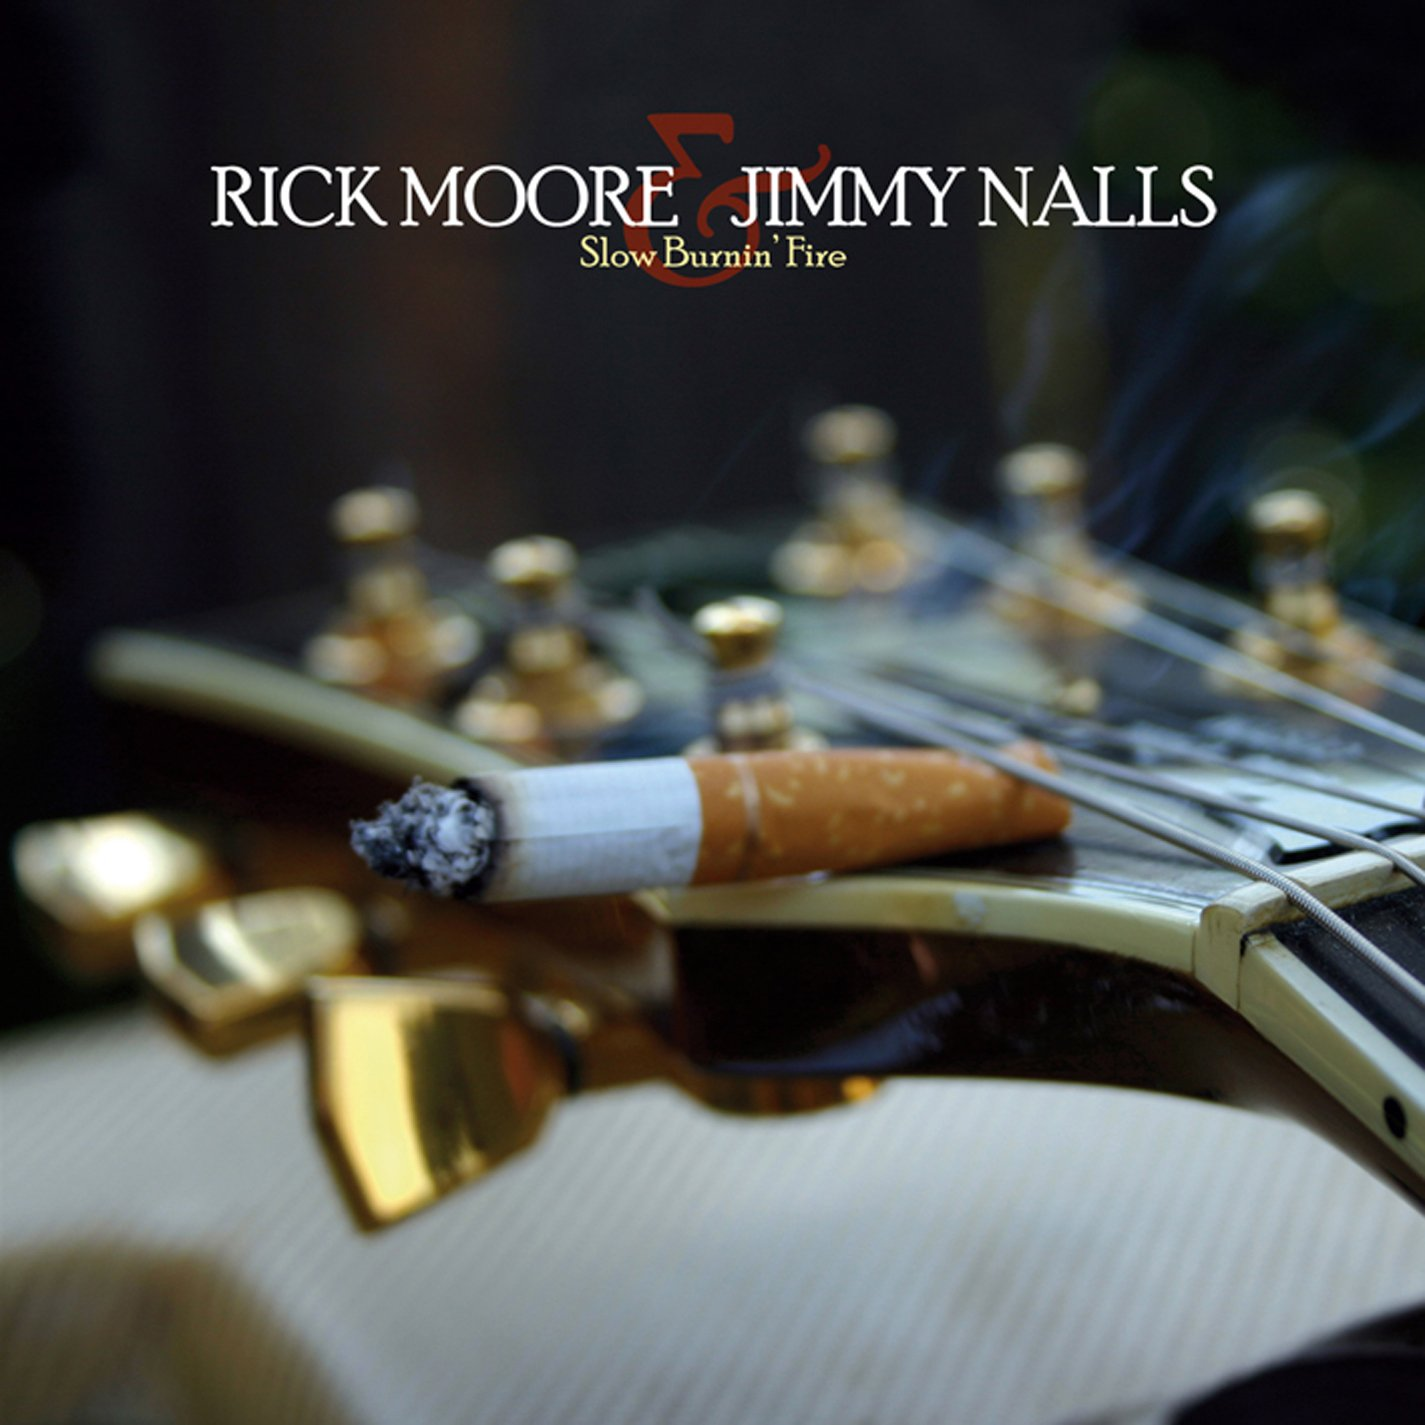 CD : Jimmy Nalls - Slow Burnin Fire (CD)